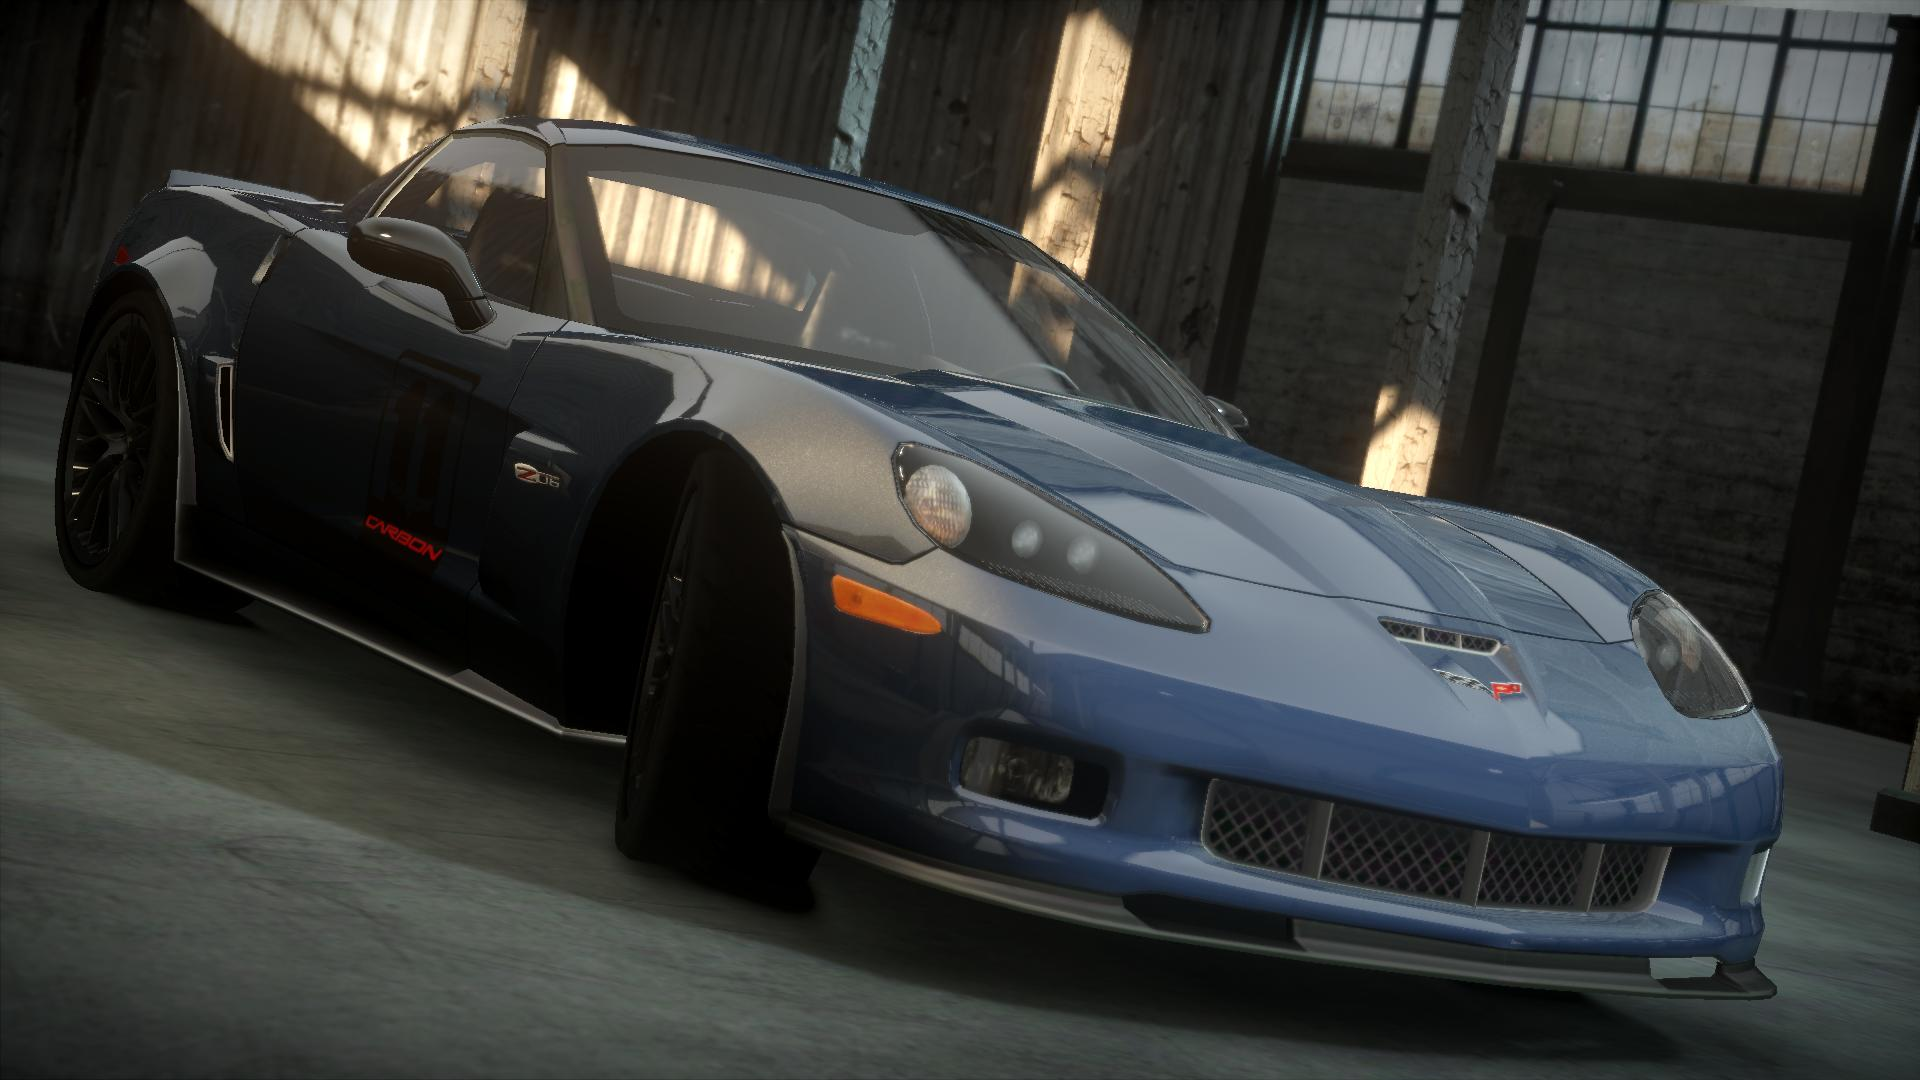 Chevrolet Corvette Z06 Carbon Limited Edition (C6)   Need for Speed ...